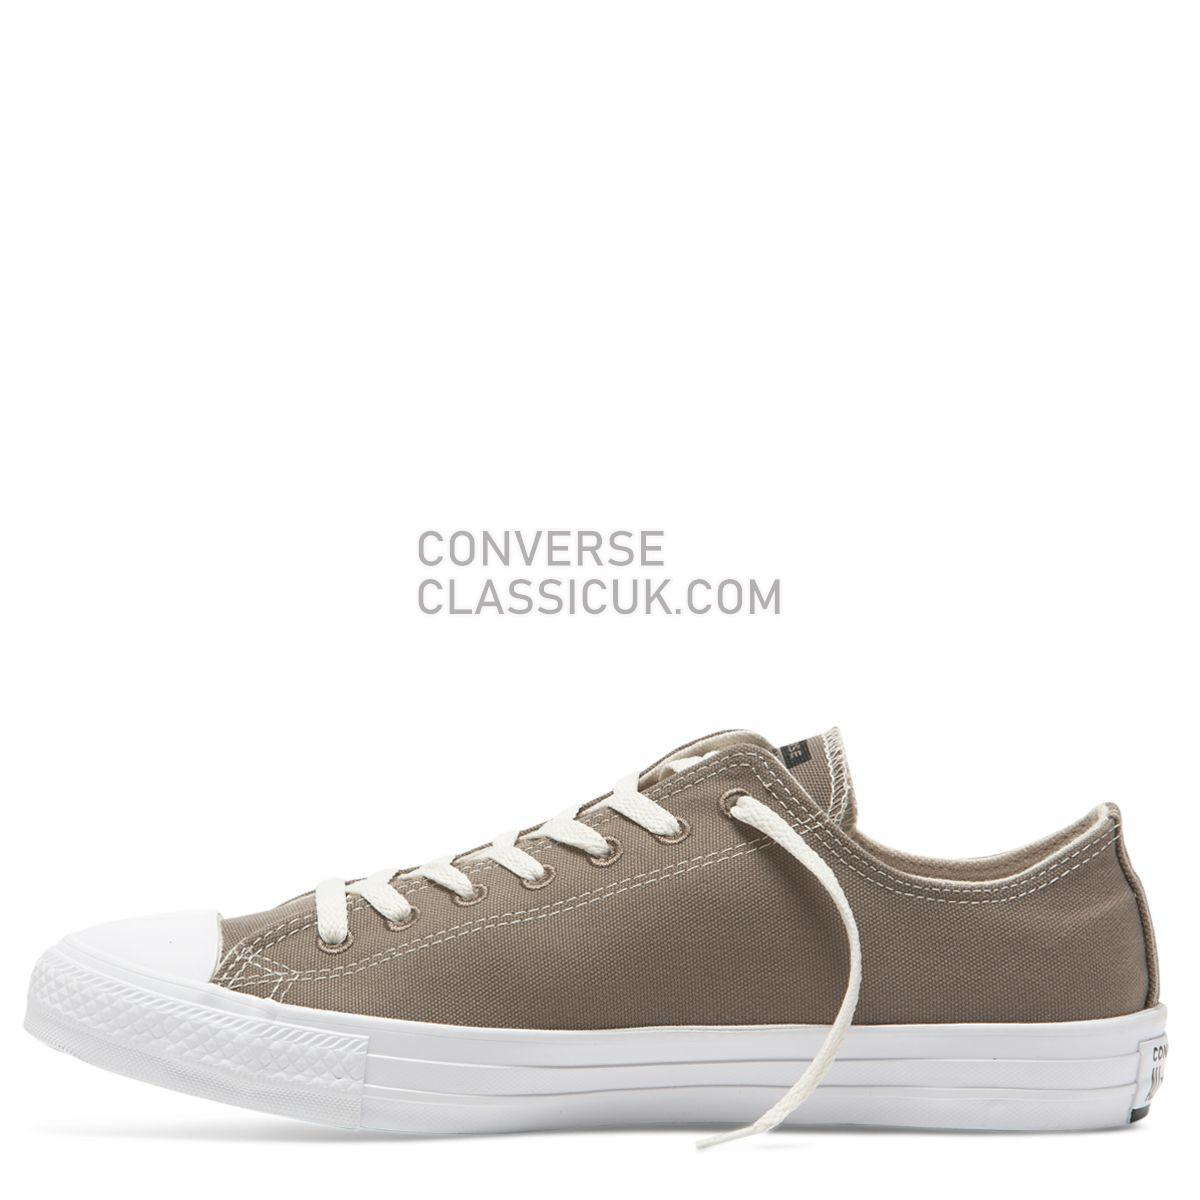 Converse Chuck Taylor All Star Renew Canvas Low Top Mason Taupe Mens Womens Unisex 164921 Mason Taupe/Black/White Shoes